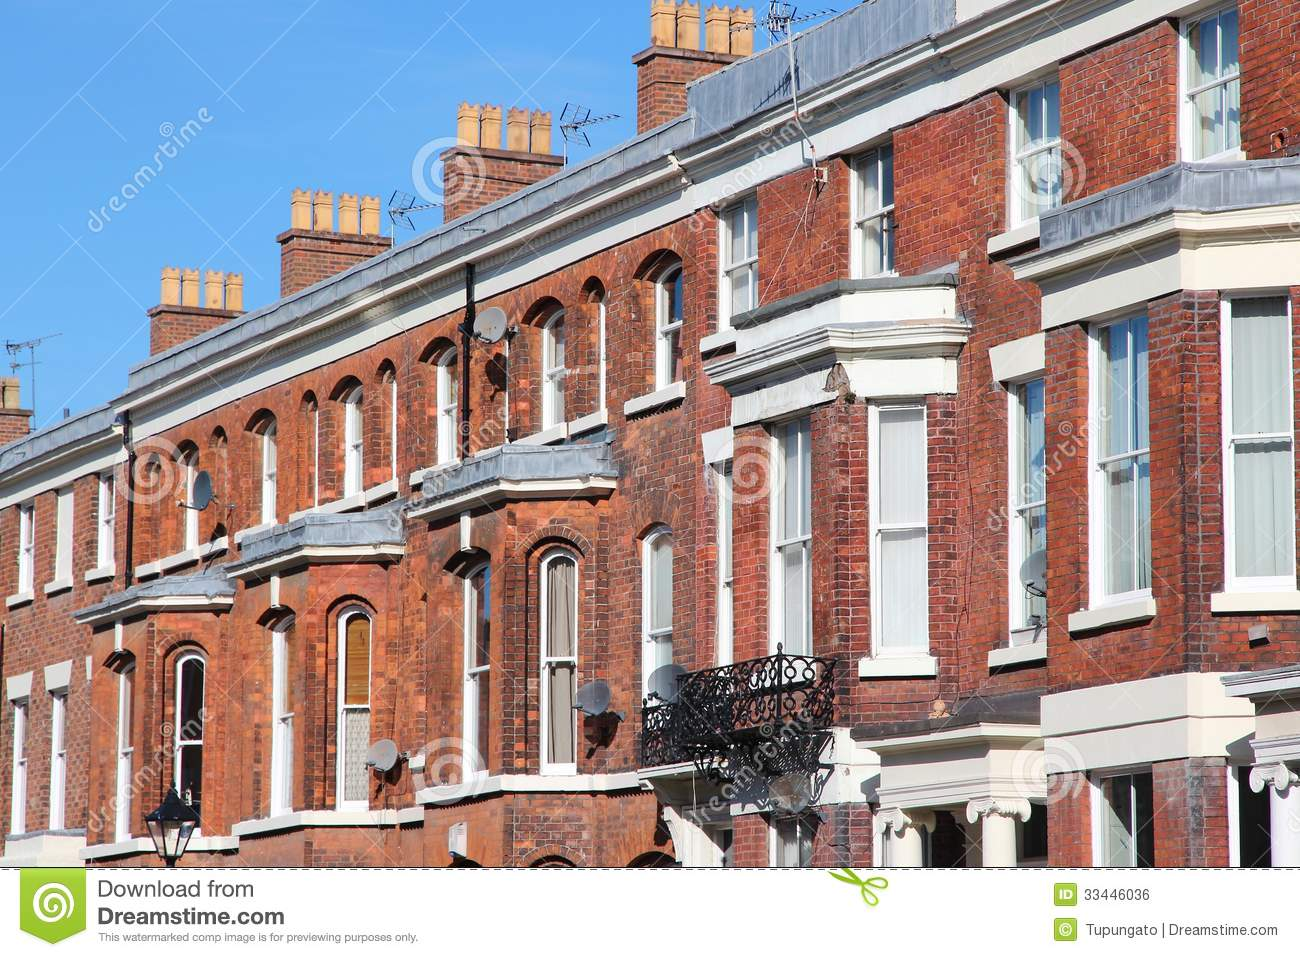 Liverpool uk stock photo image of europe merseyside for North west house